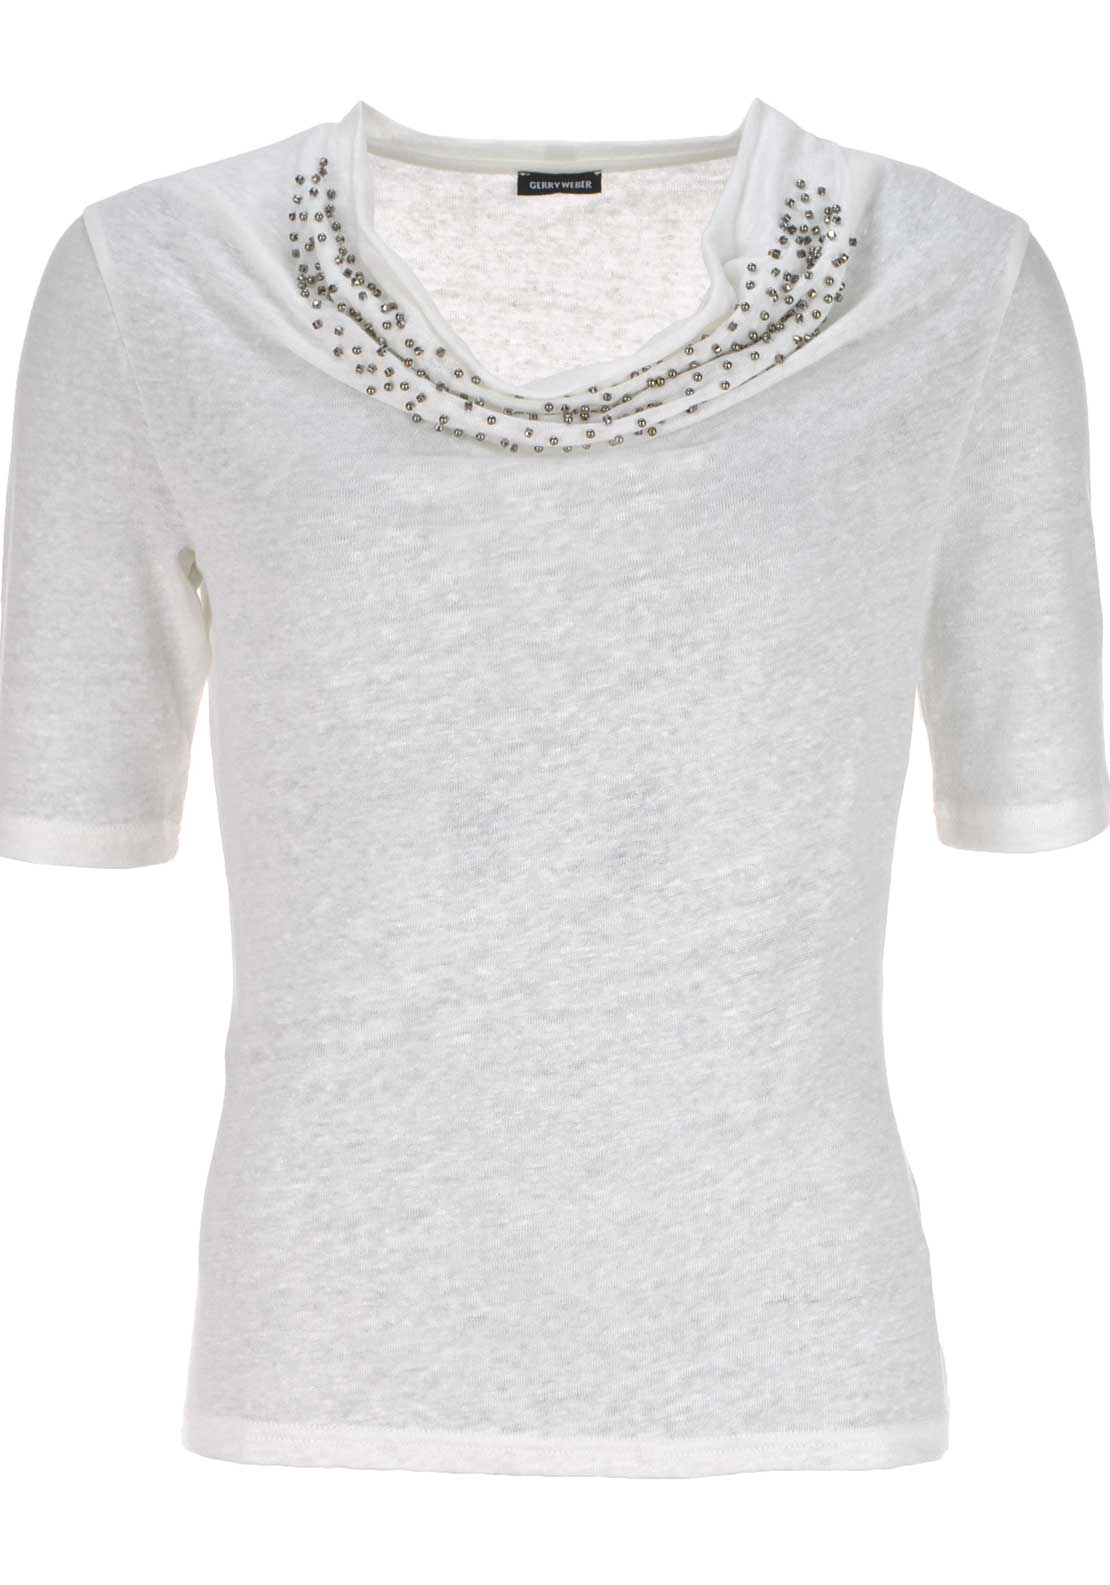 Gerry Weber Embellished Neck Linen Top, Cream